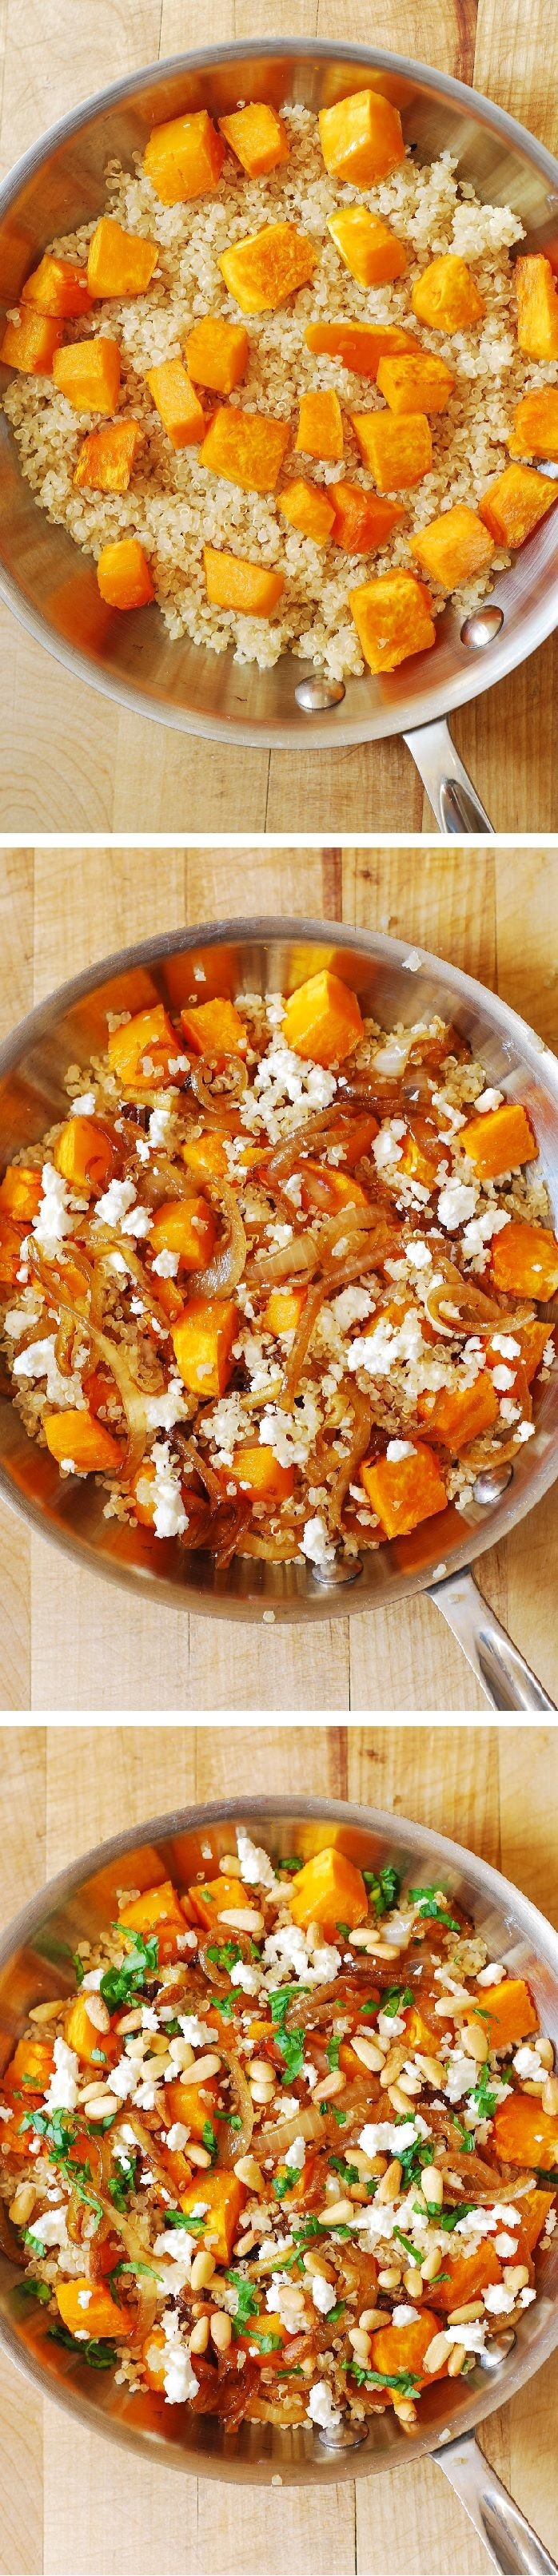 Healthy Quinoa Salad with Roasted Butternut Squash, Pine Nuts, Caramelized Onions and Feta cheese, with French Vinaigrette salad dressing. Healthy, full of anti-oxidants, protein, and it's gluten free!